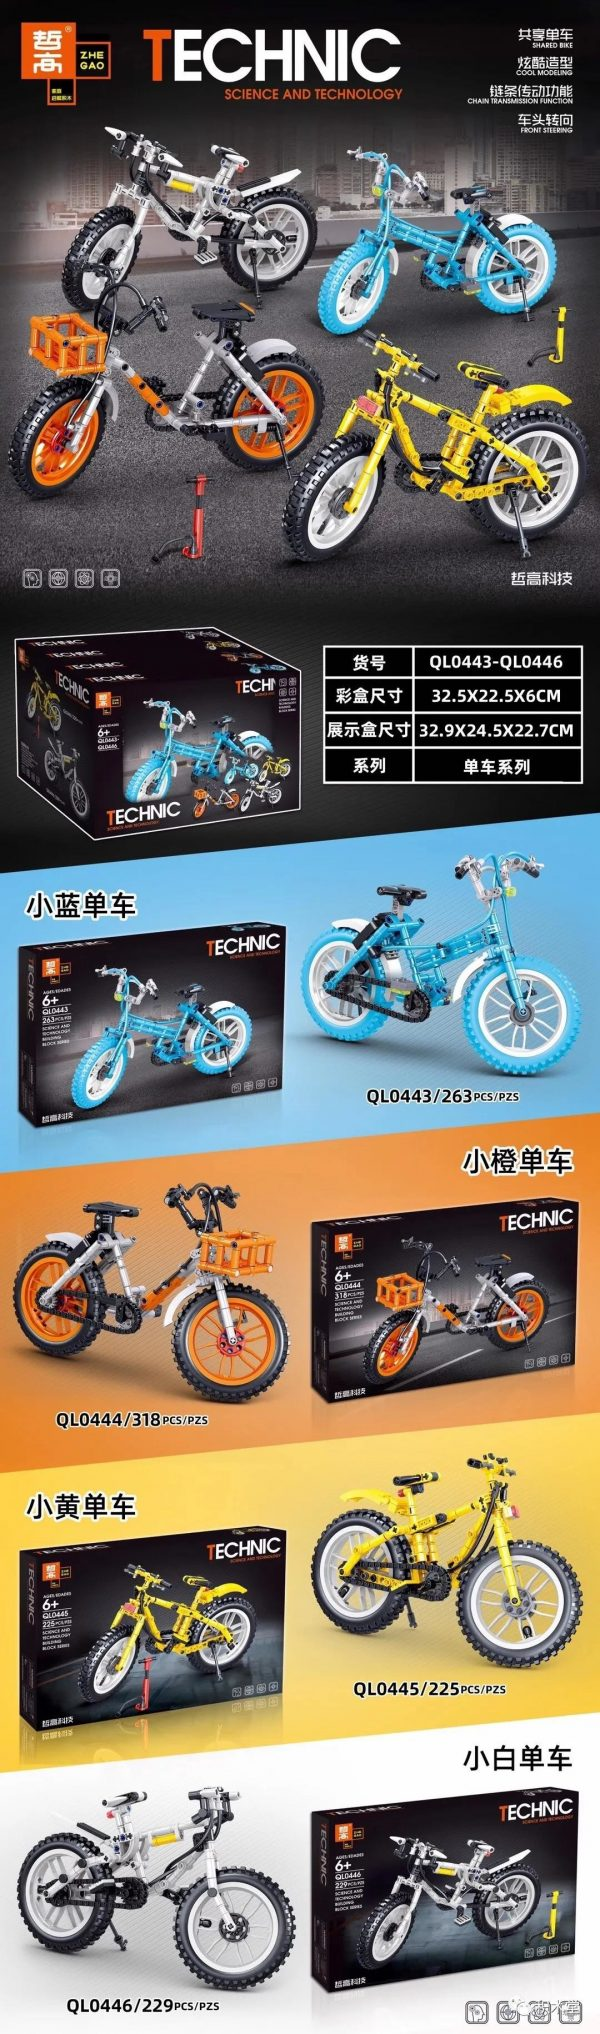 ZHEGAO QL0444 Shared bicycles 4 types of small blue bicycles, small orange bicycles, small yellow bicycles, and small white bicycles 0